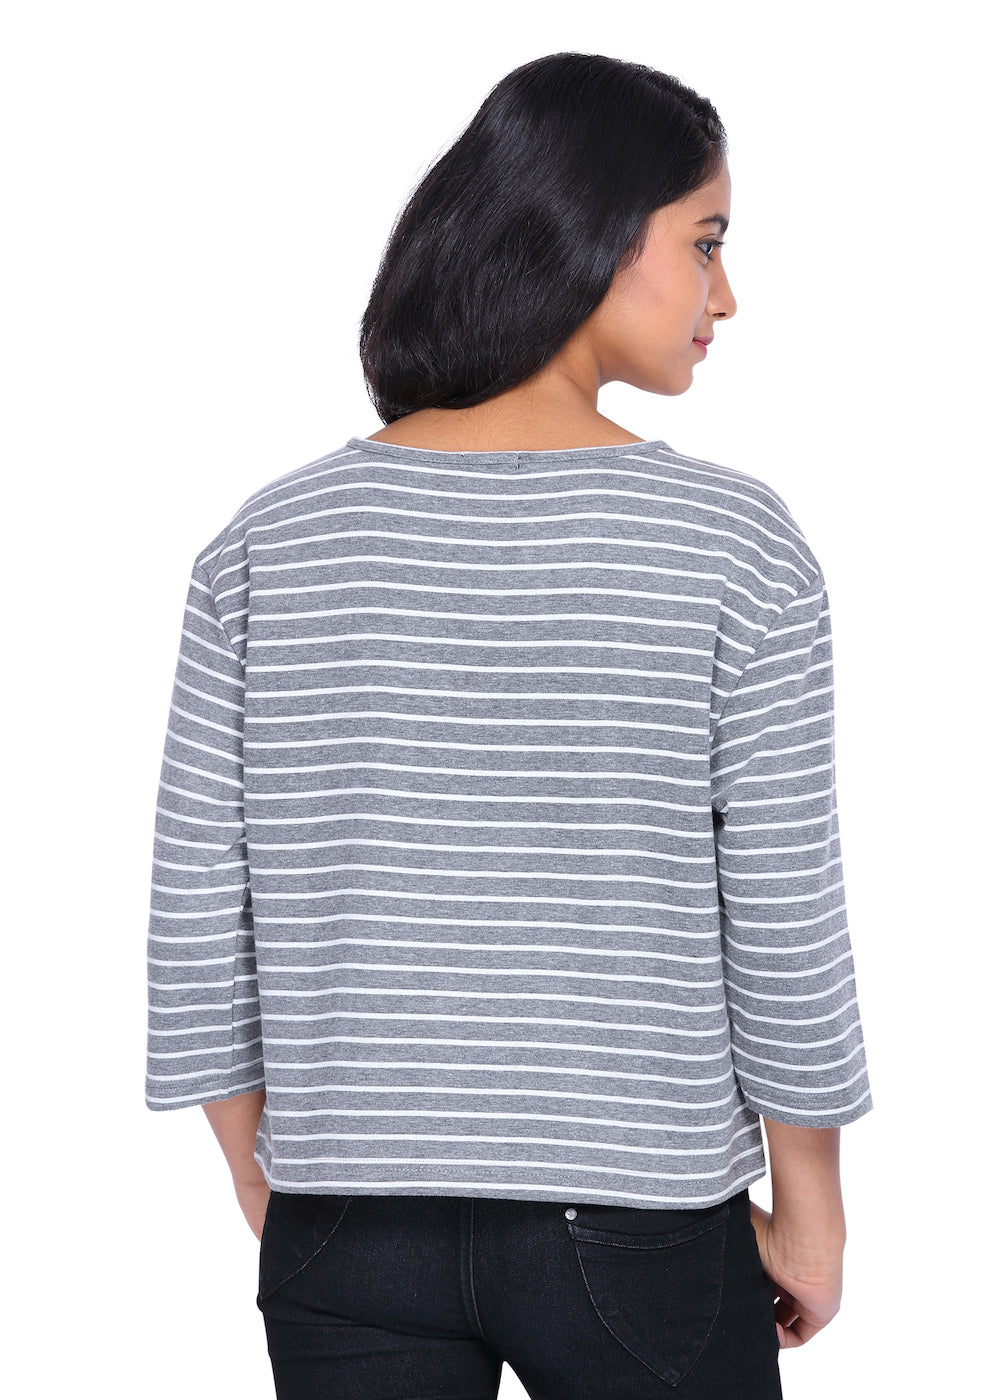 Grey & White Stripes fleece crop top - GENZEE